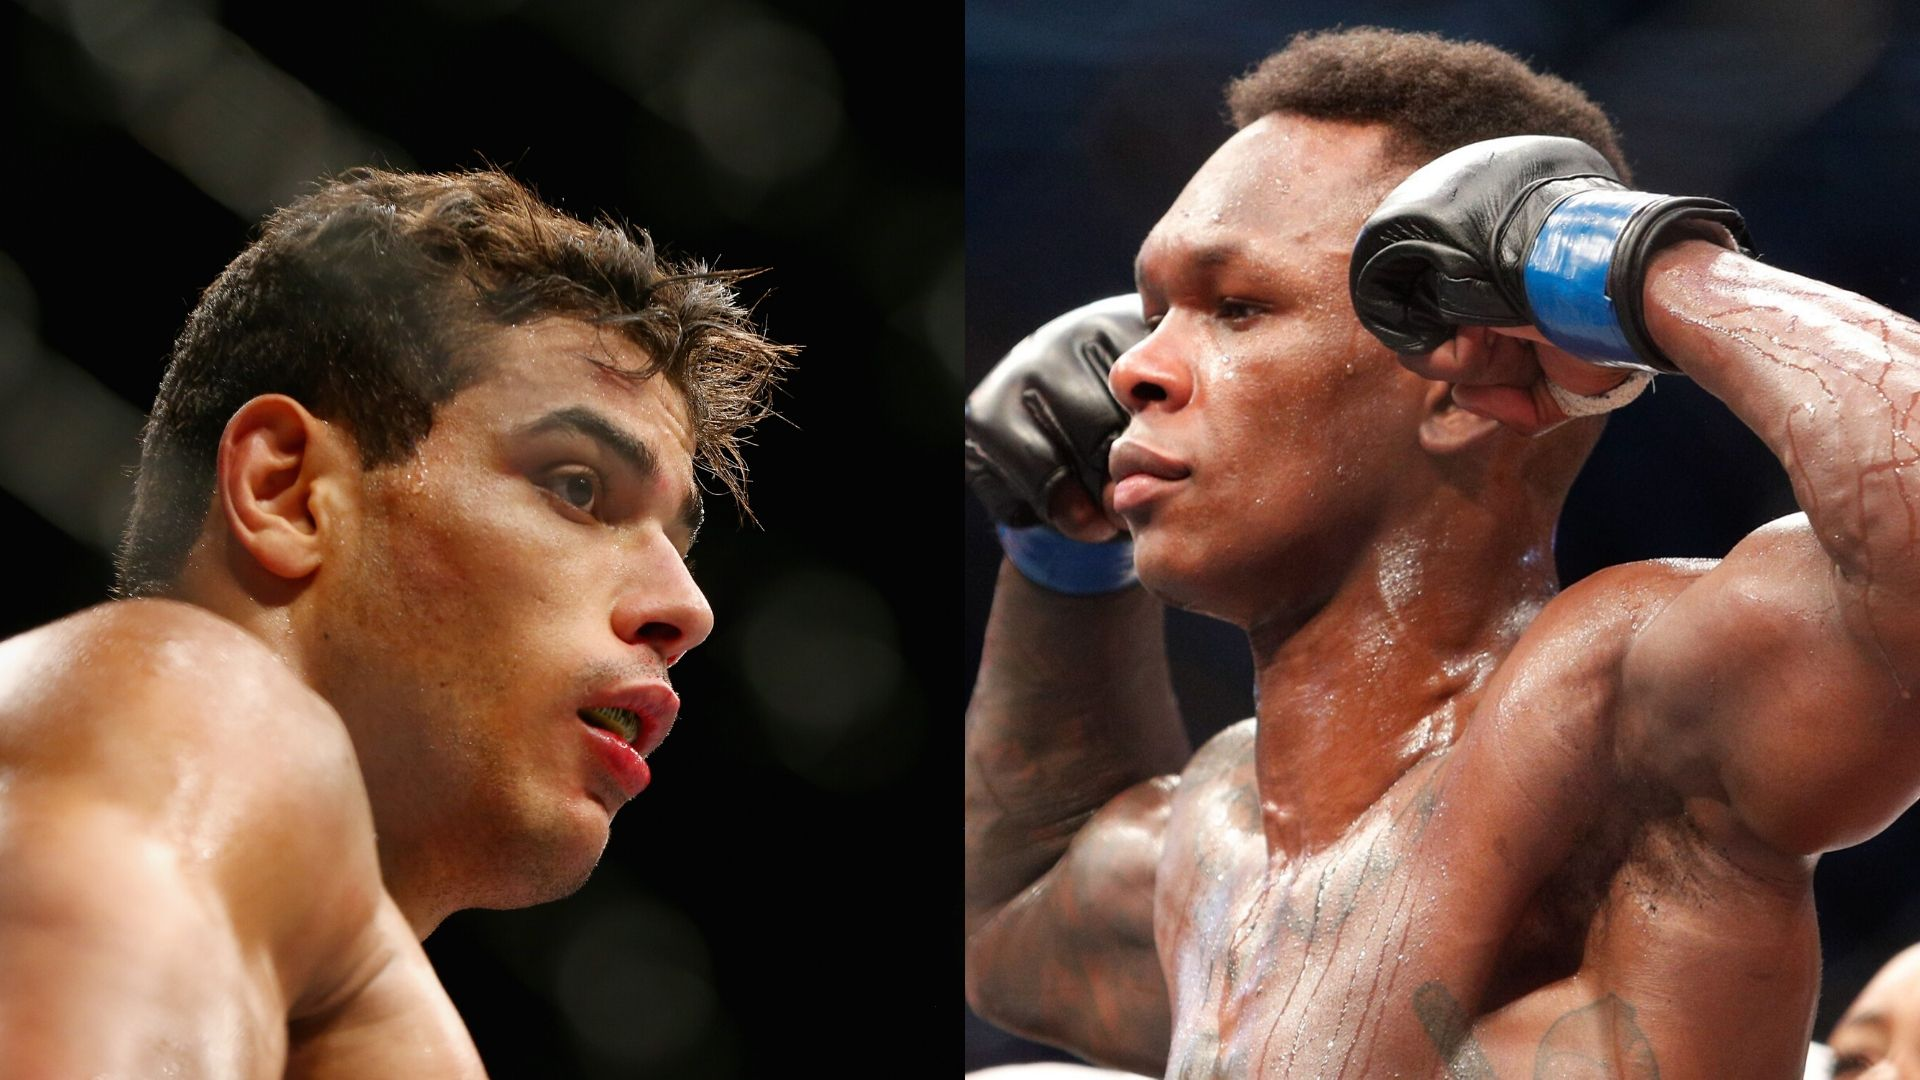 Paulo Costa vs Israel Adesanya could be one of the future UFC bouts